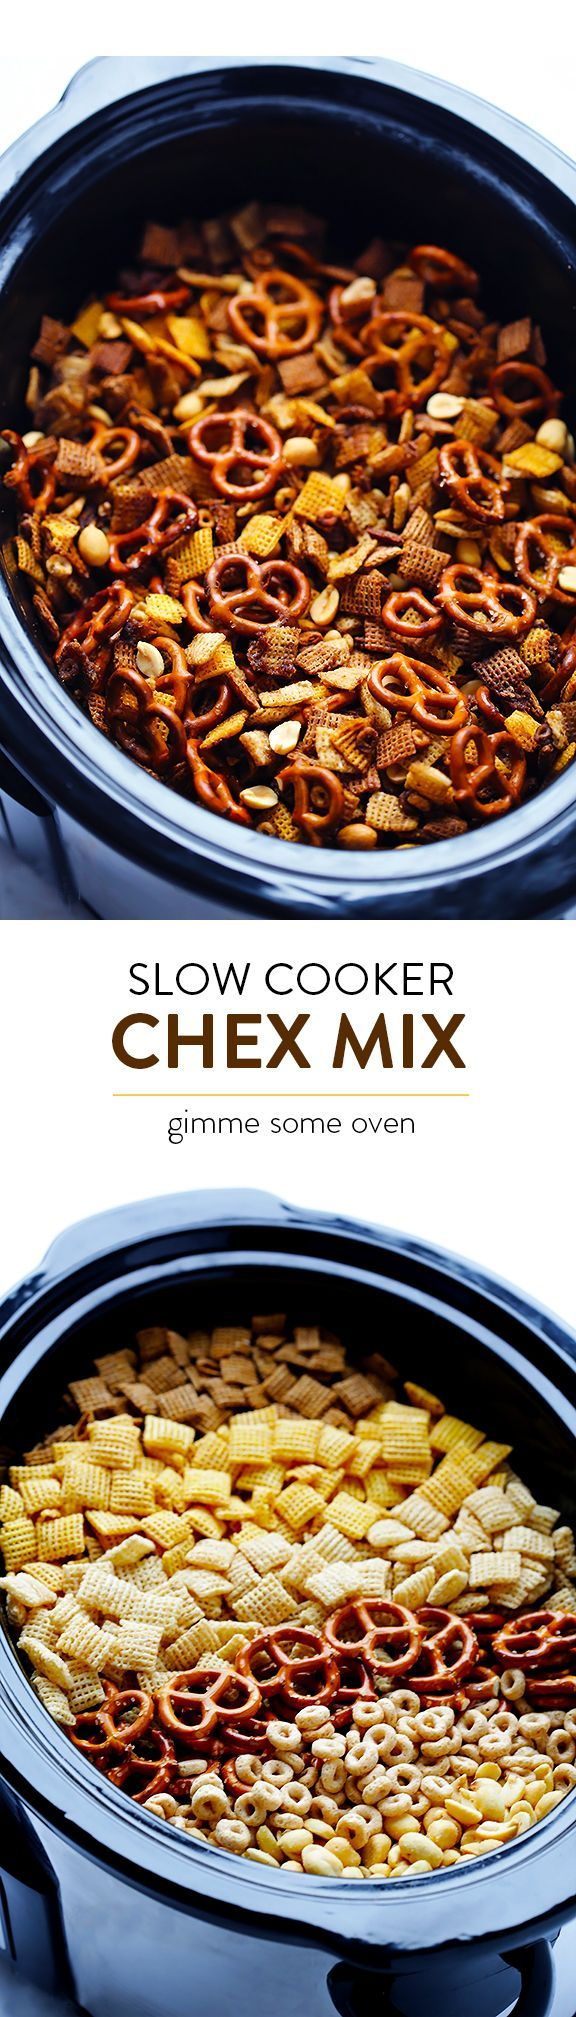 Slow Cooker Chex Mix -- turns out that this favorite snack is actually SUPER easy to make in the crock pot!  So tasty, and always a crowd favorite.   http://gimmesomeoven.com